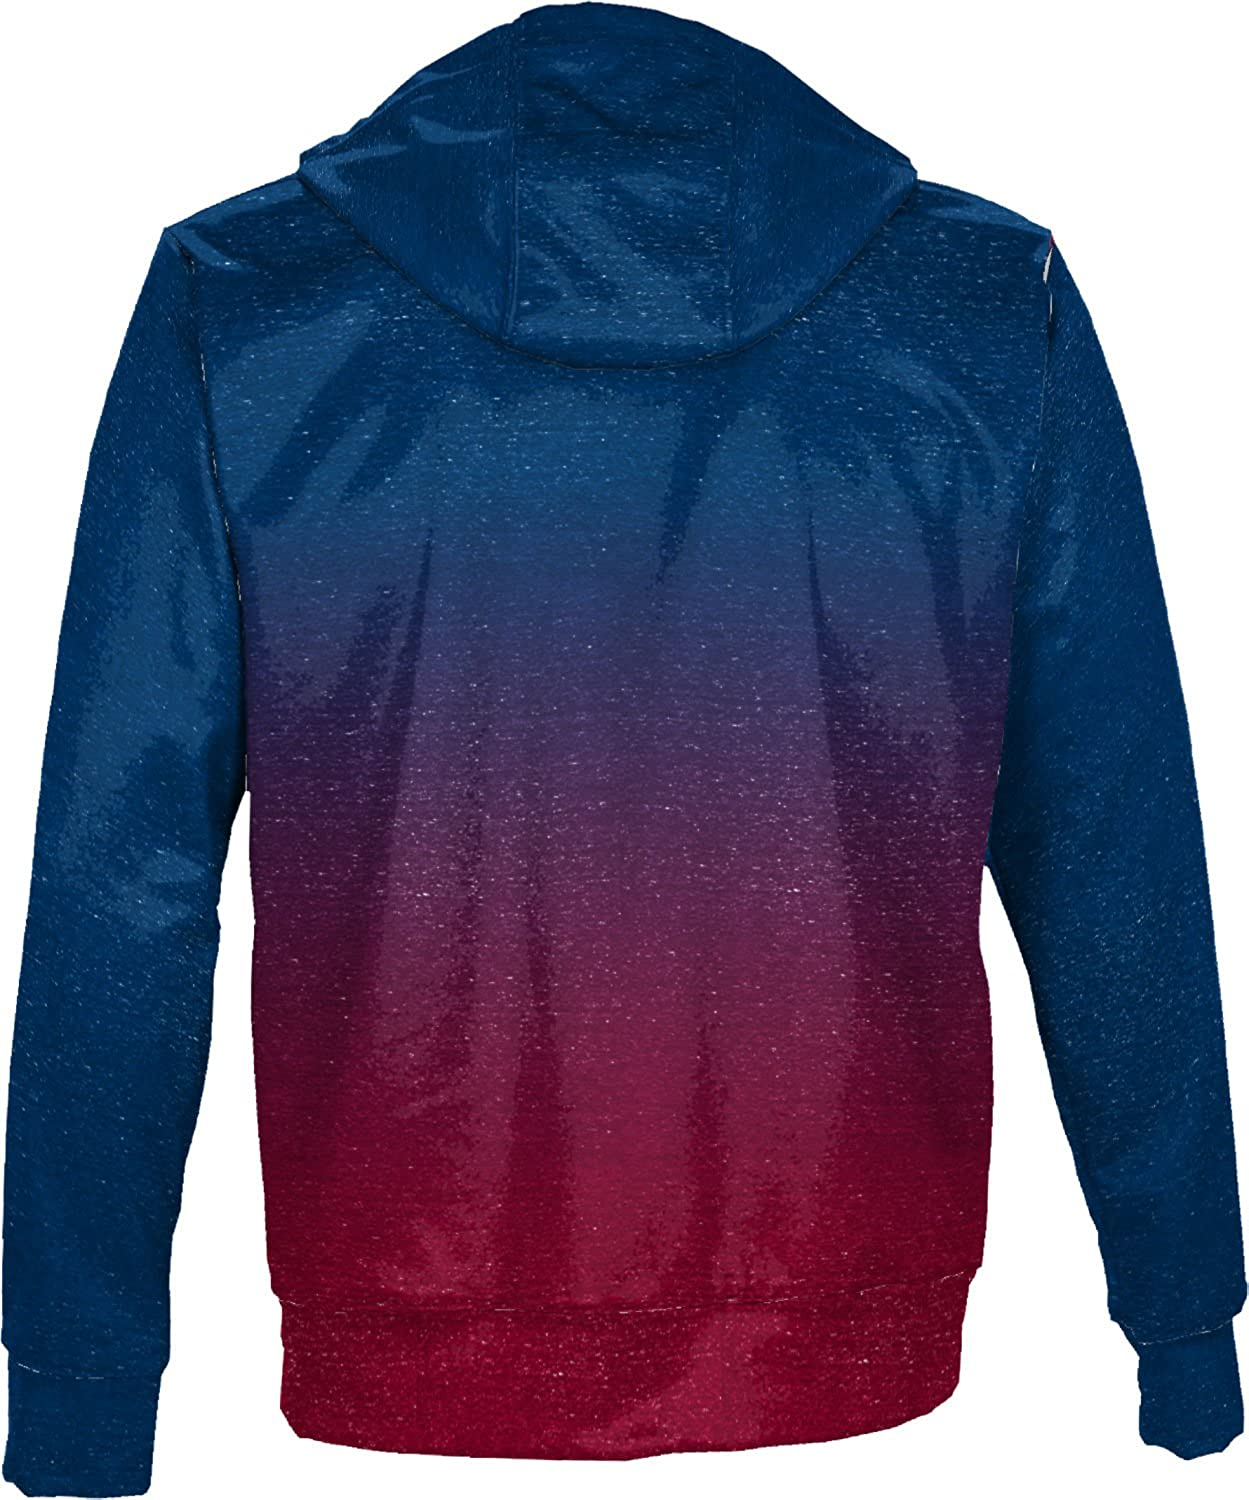 ProSphere University of Pennsylvania Boys Full Zip Hoodie Gradient